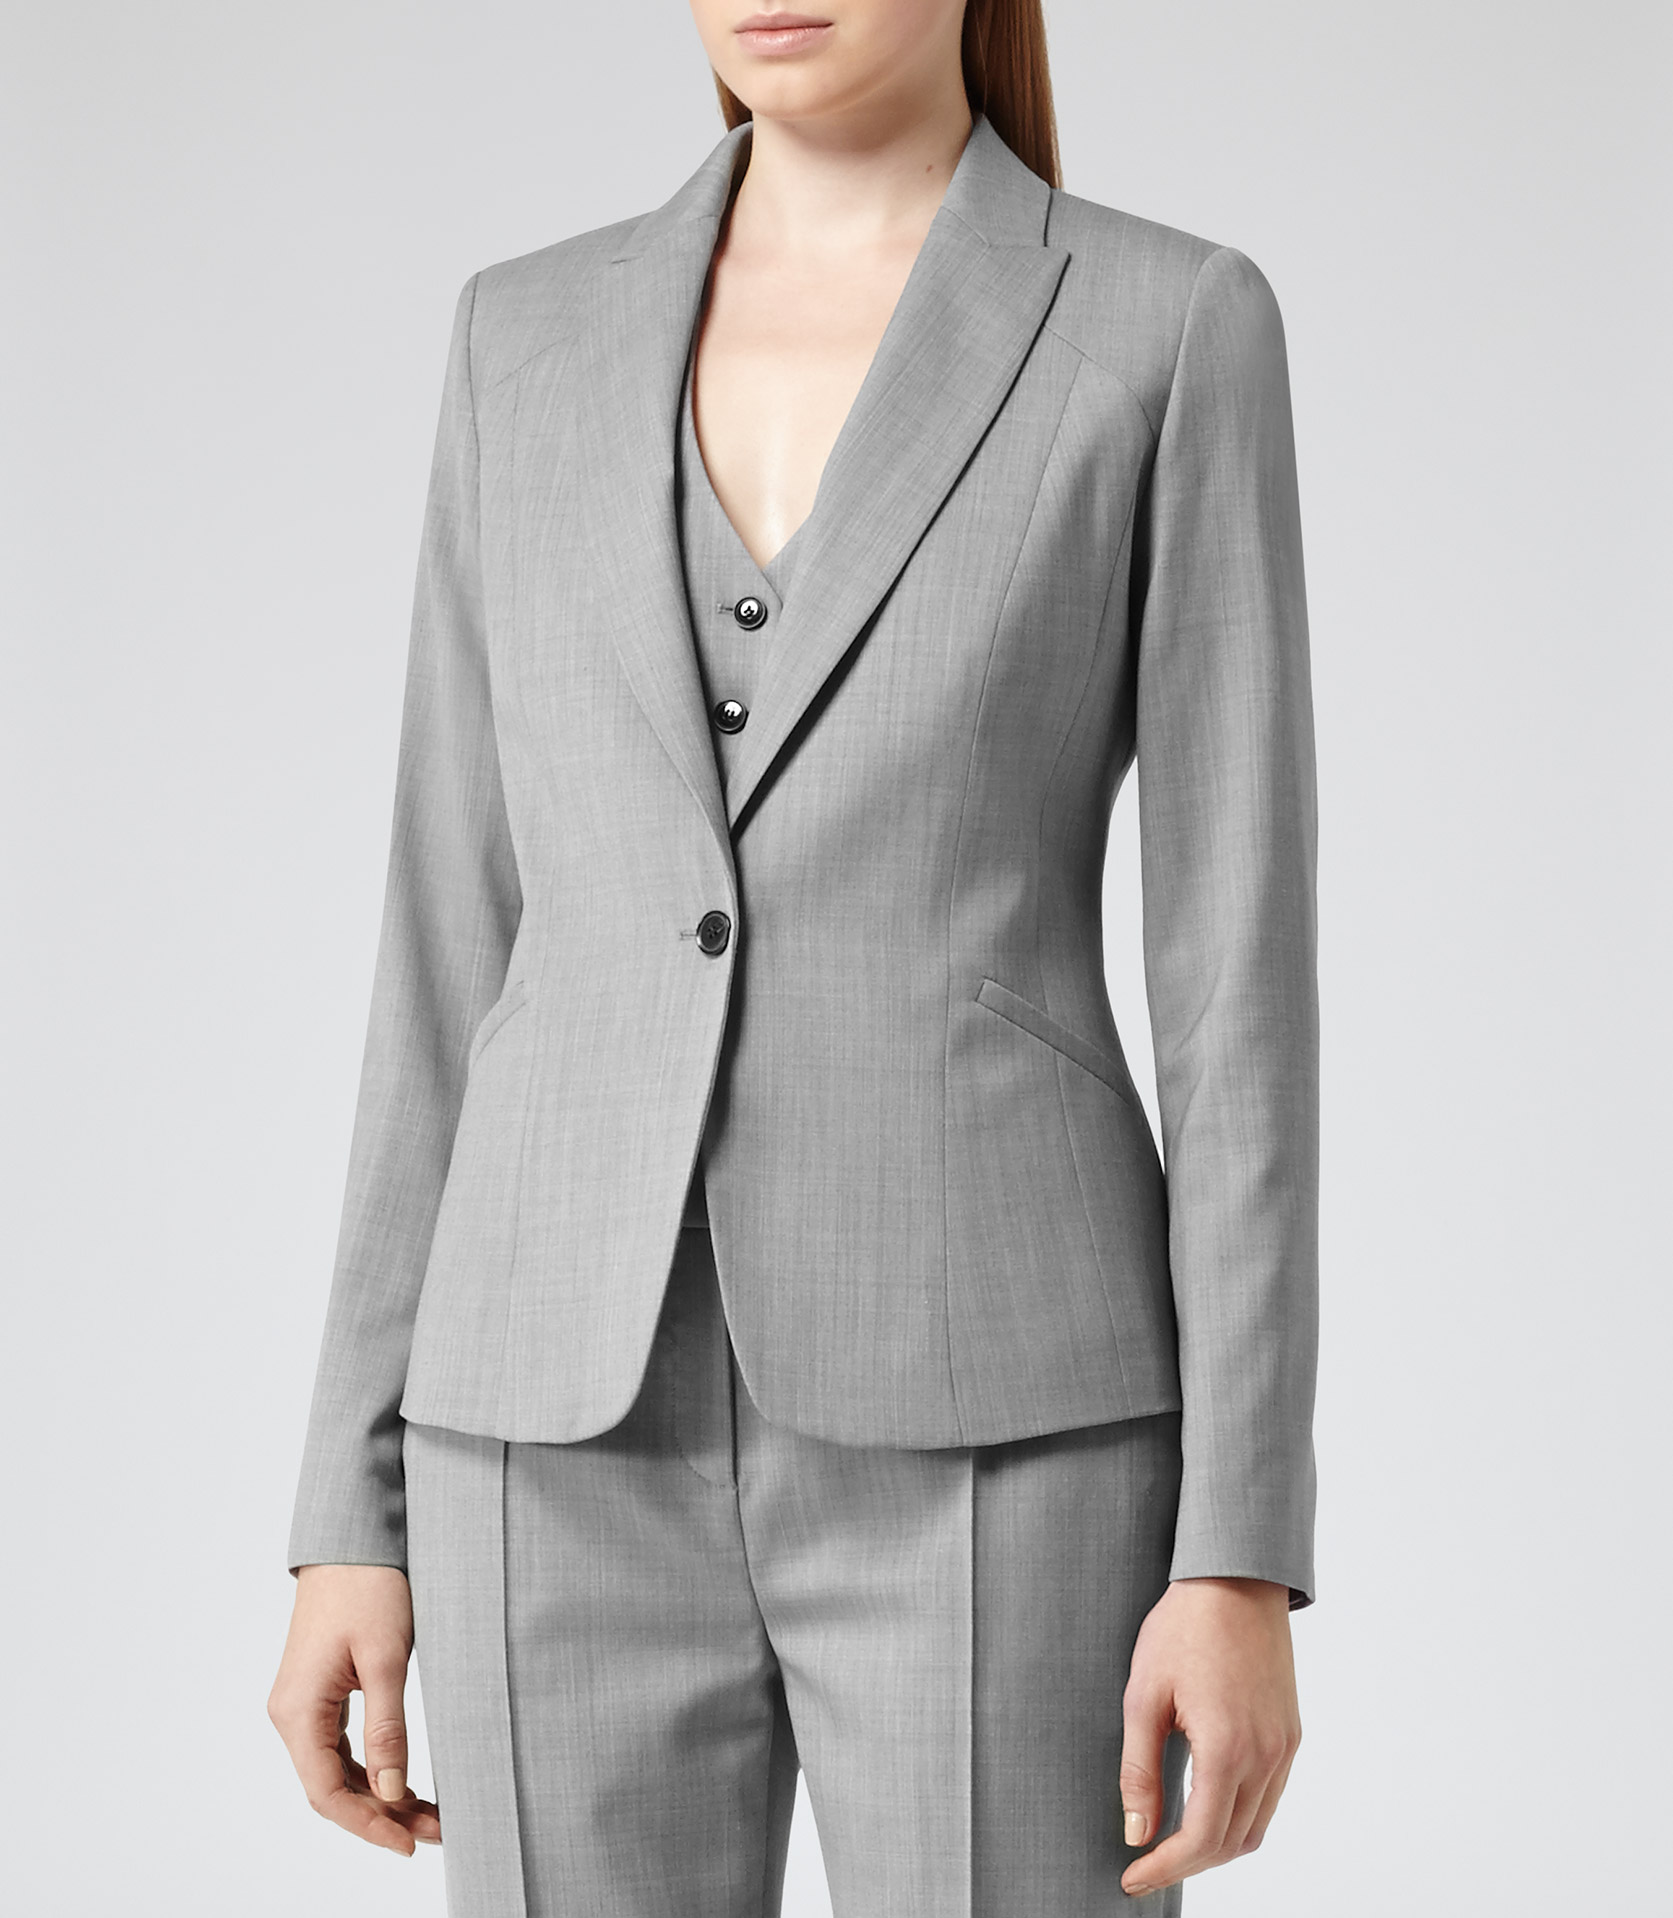 Lyst - Reiss Tomley Arc Tailored Jacket In Gray